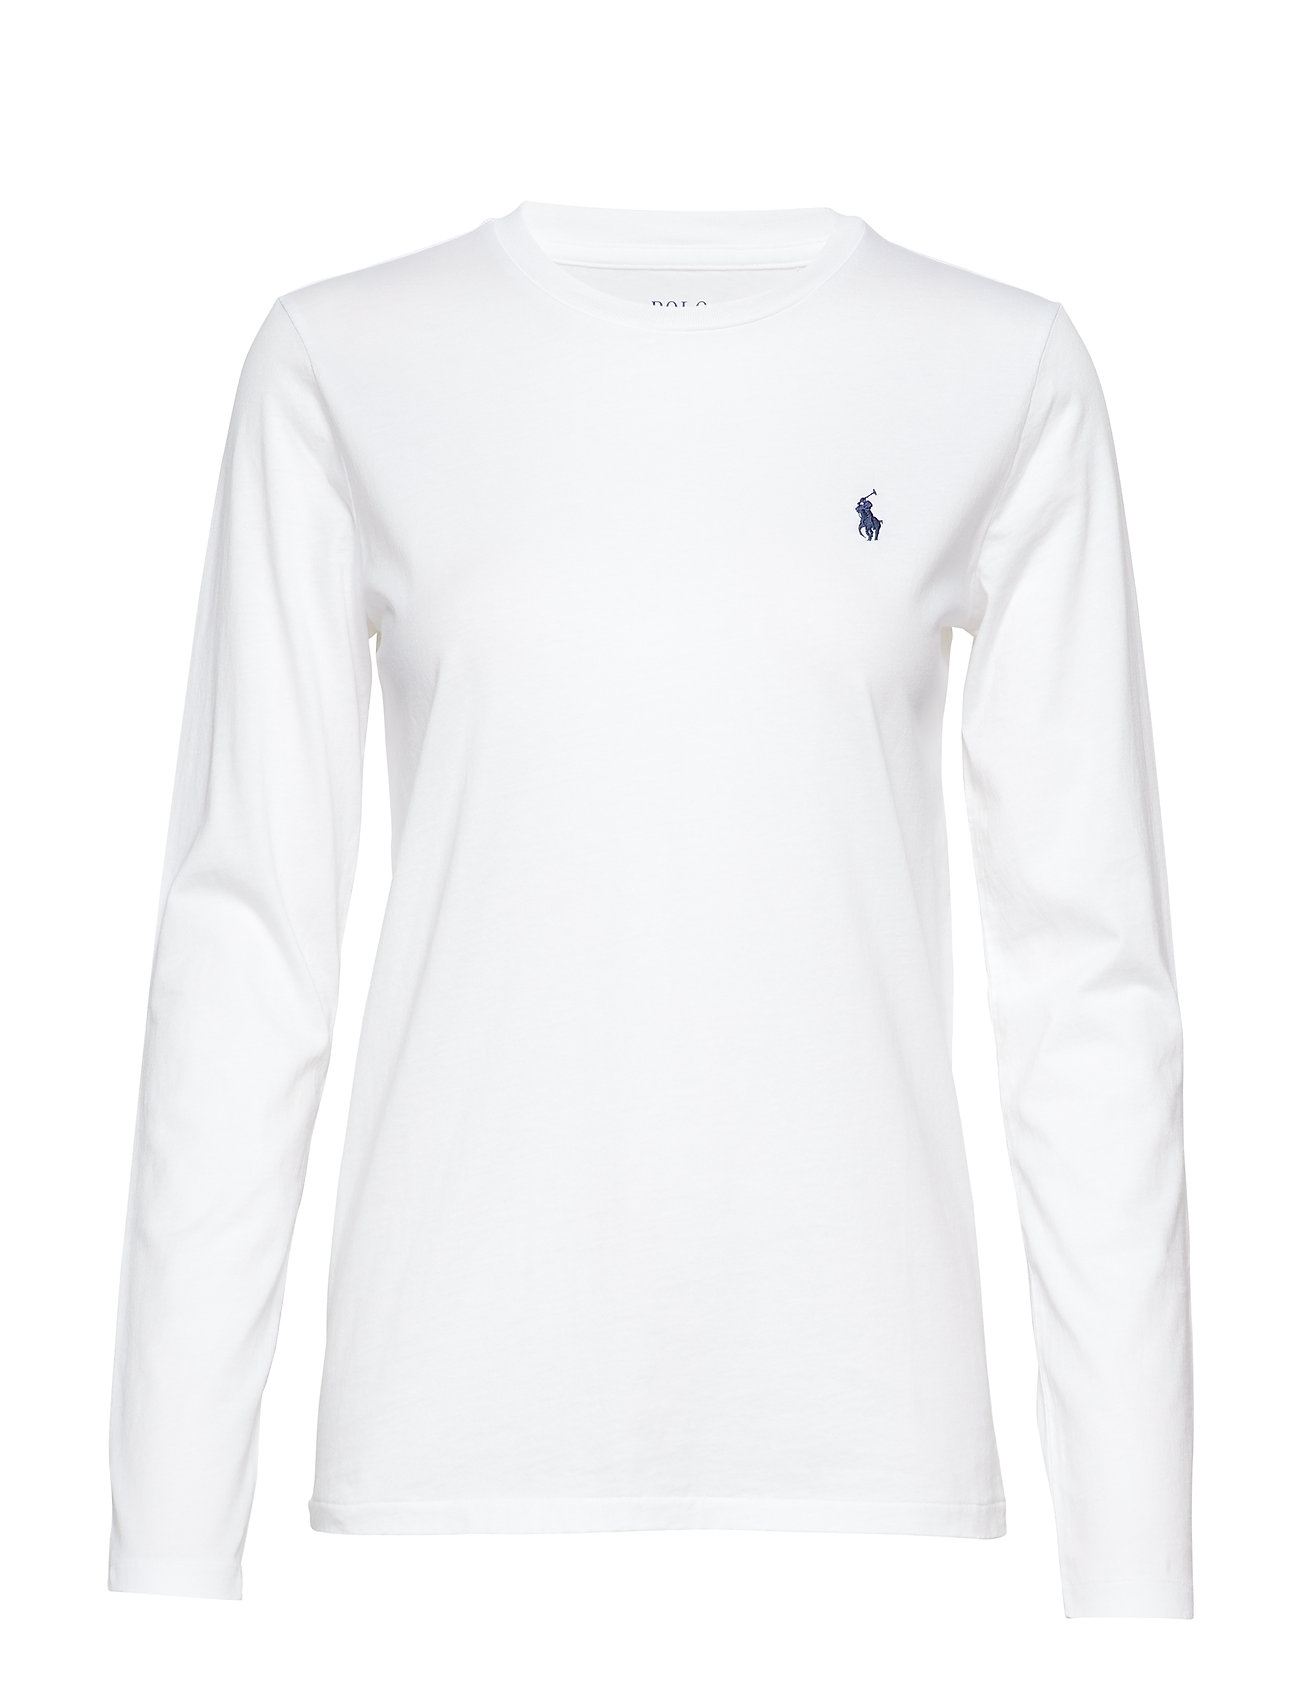 Polo Ralph Lauren Jersey Long-Sleeve Shirt - WHITE